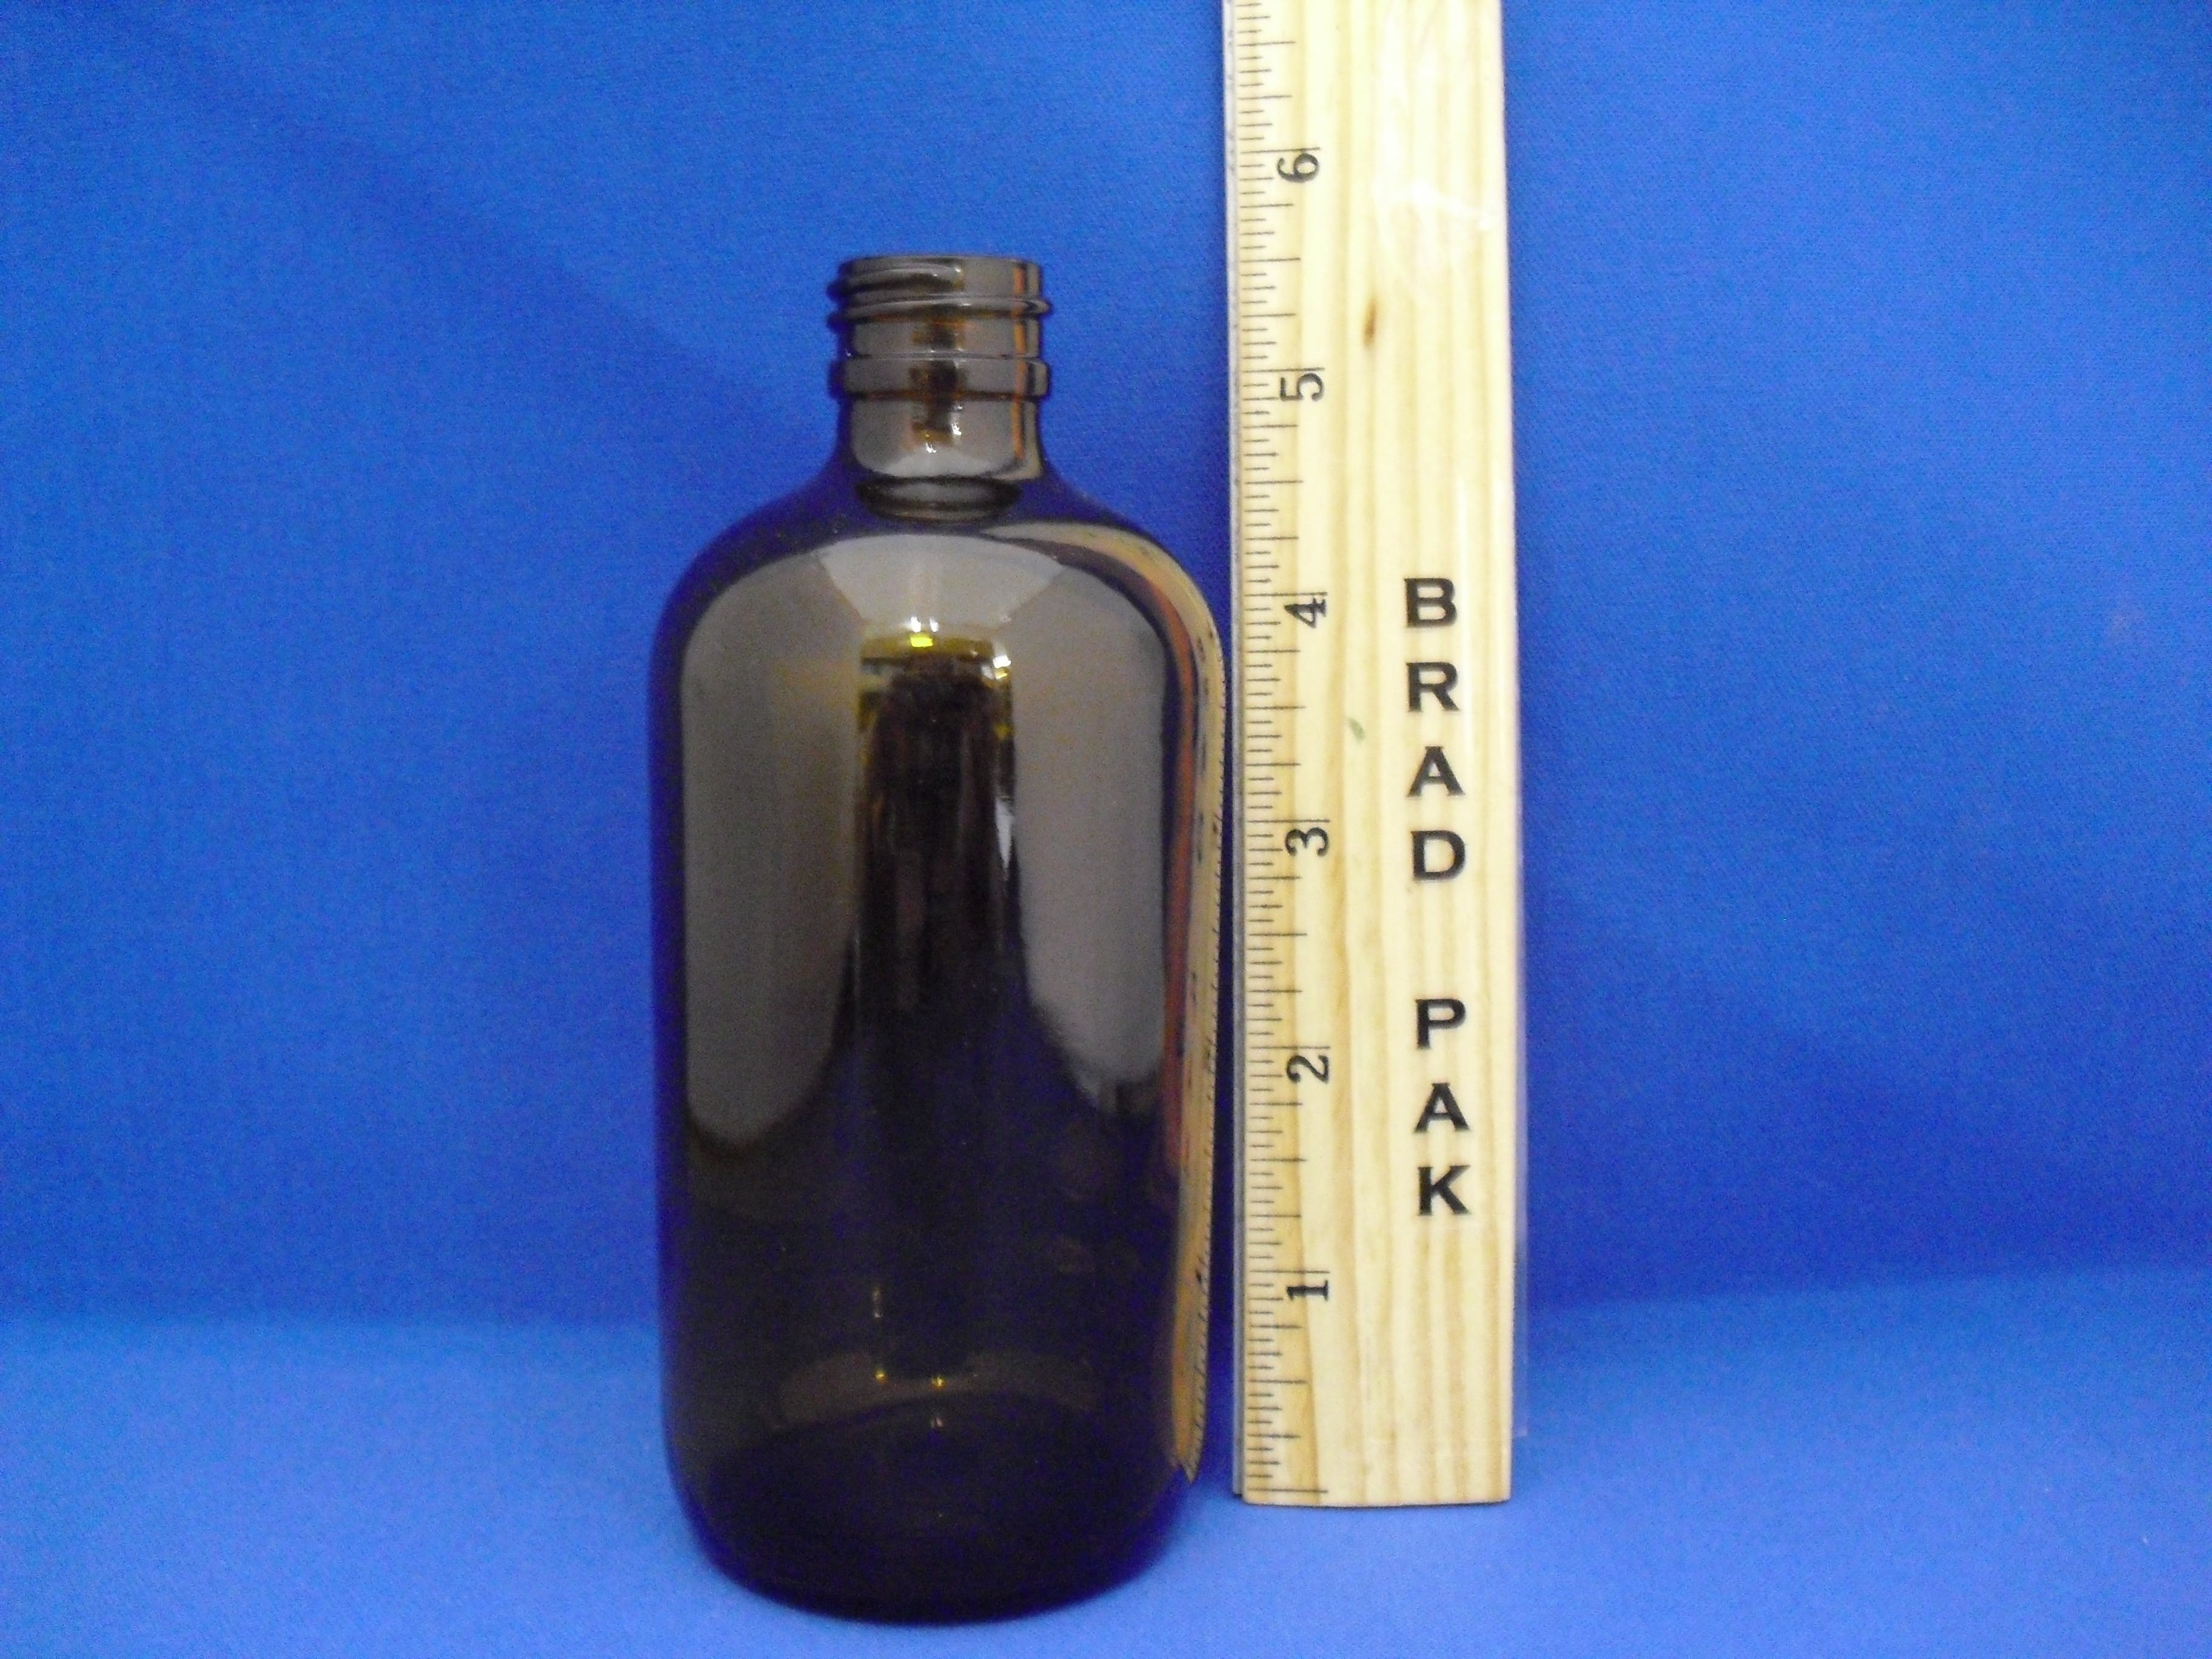 4 OZ AMBER BOSTON ROUND BOTTLE 22-400 Glass bottle sold by Brad-Pak